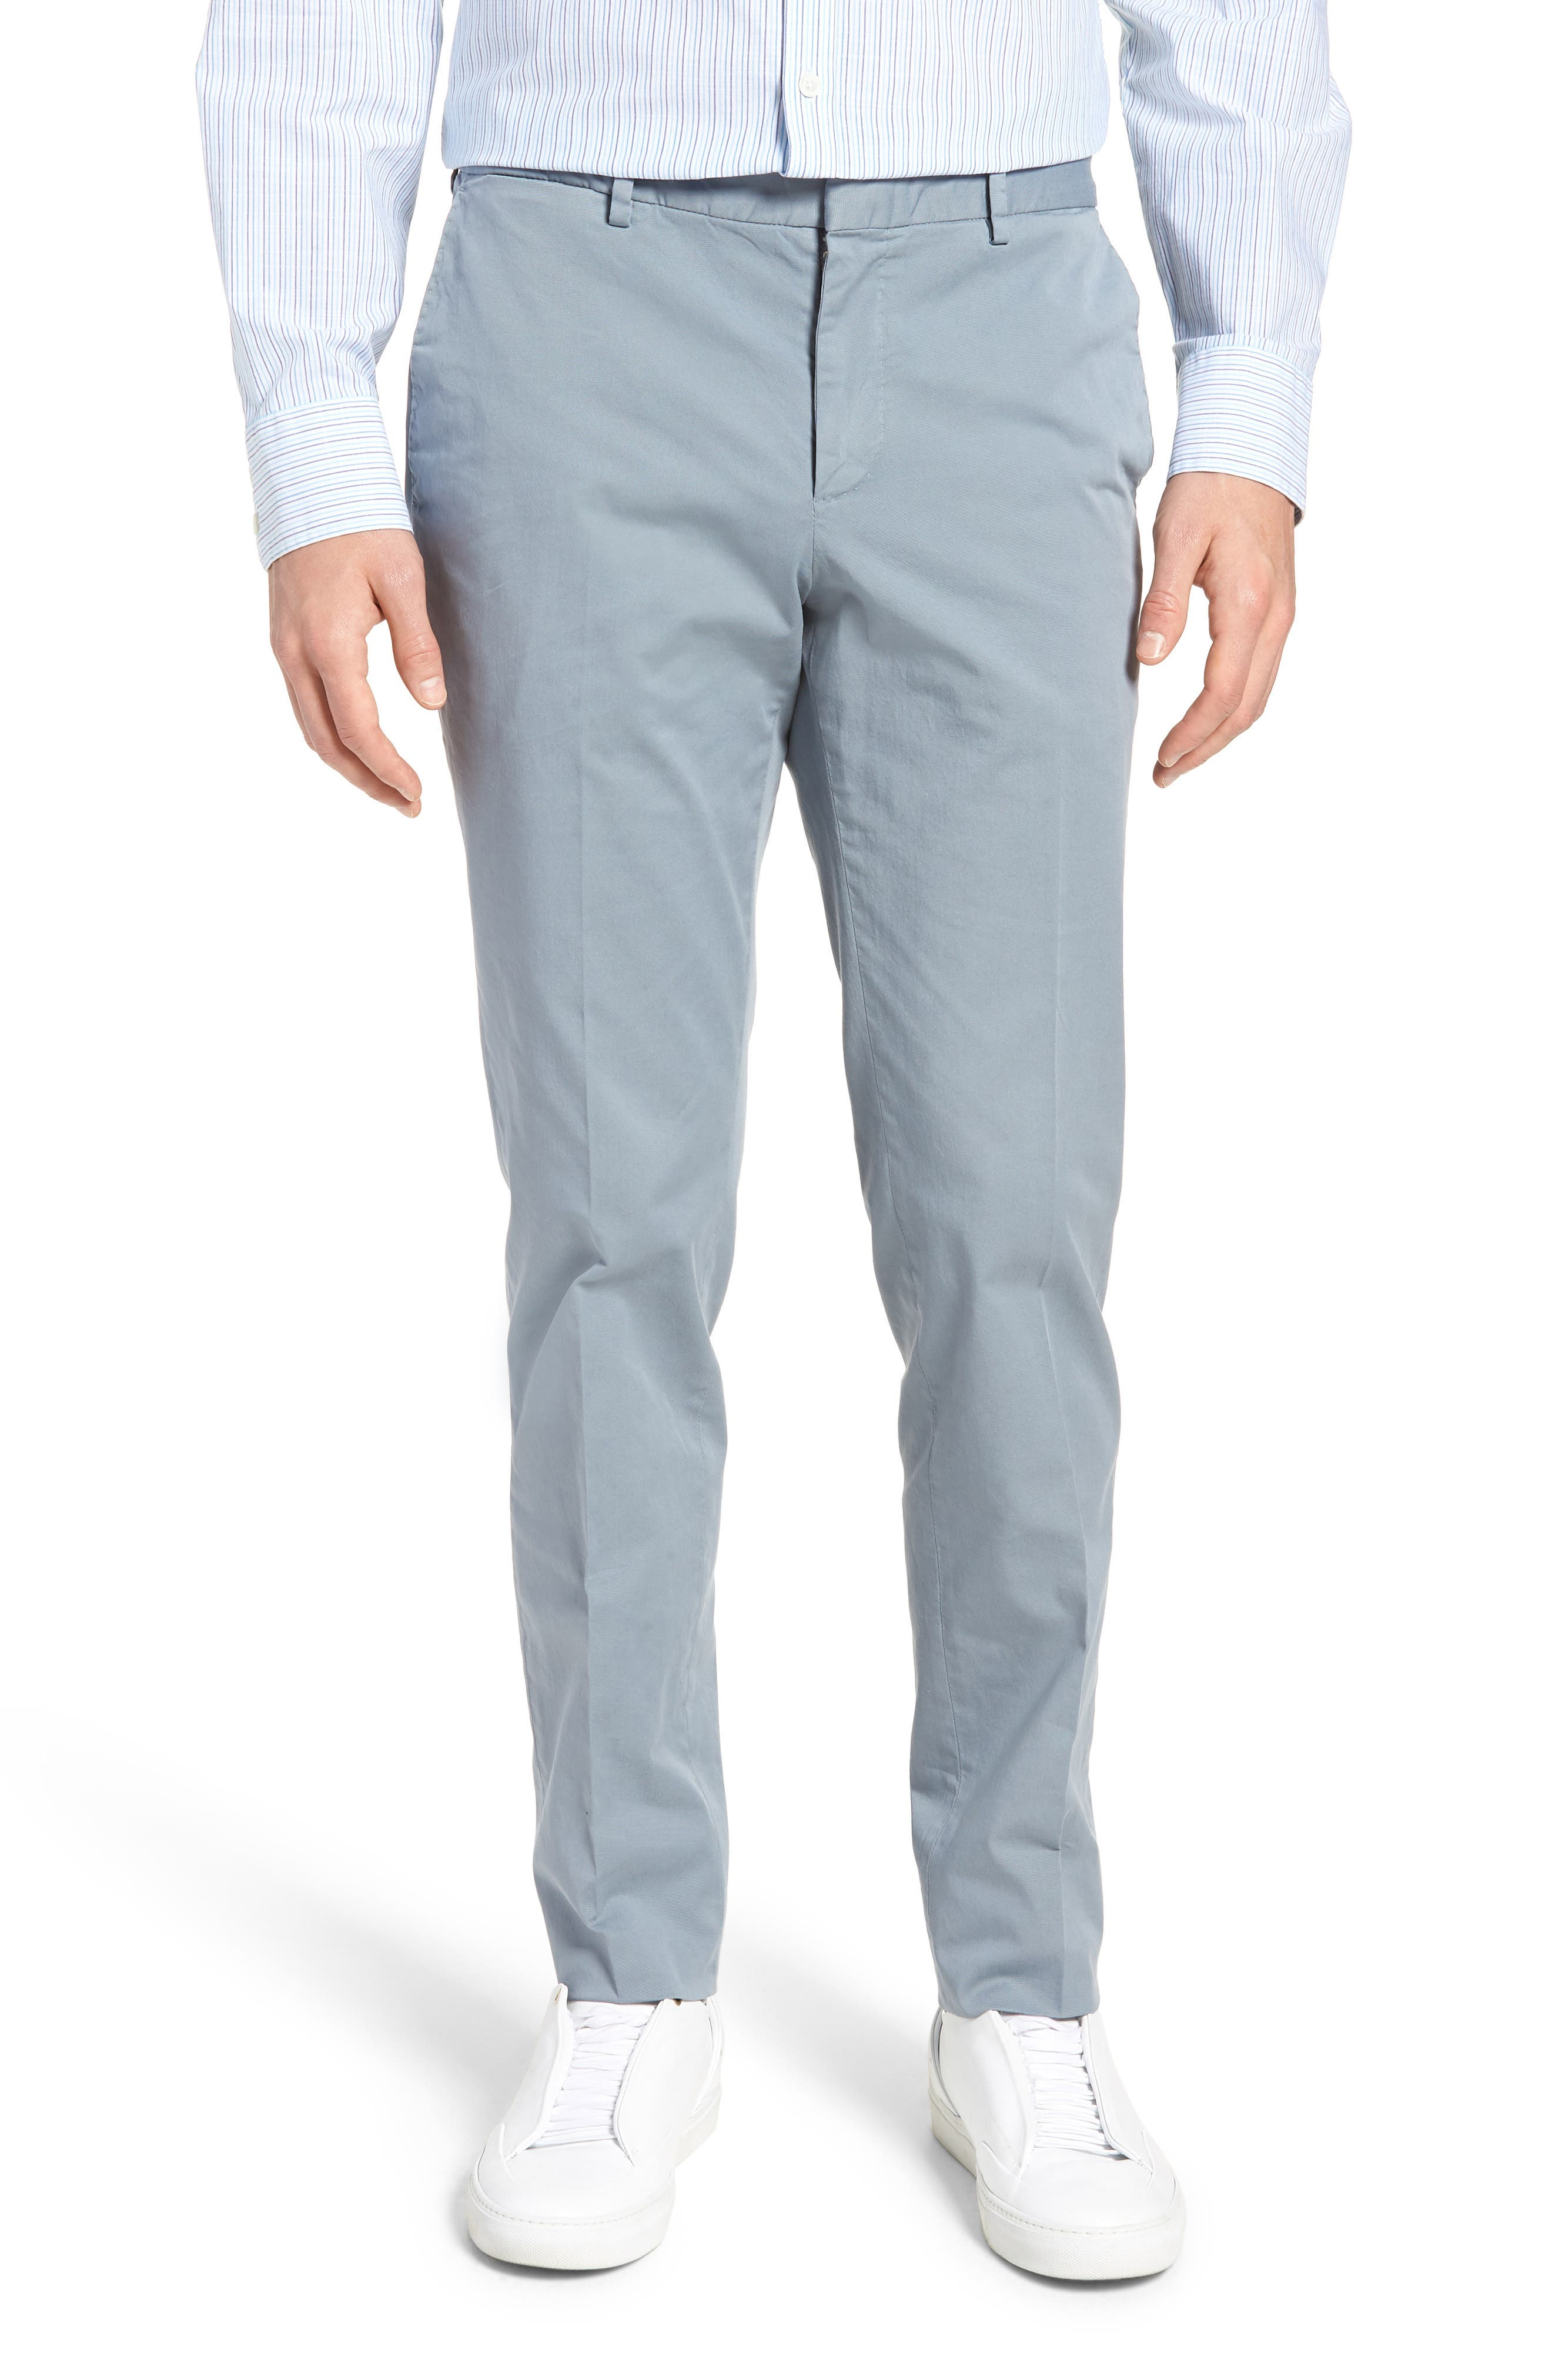 Barlow-D Flat Front Stretch Solid Cotton Trousers,                         Main,                         color, Blue